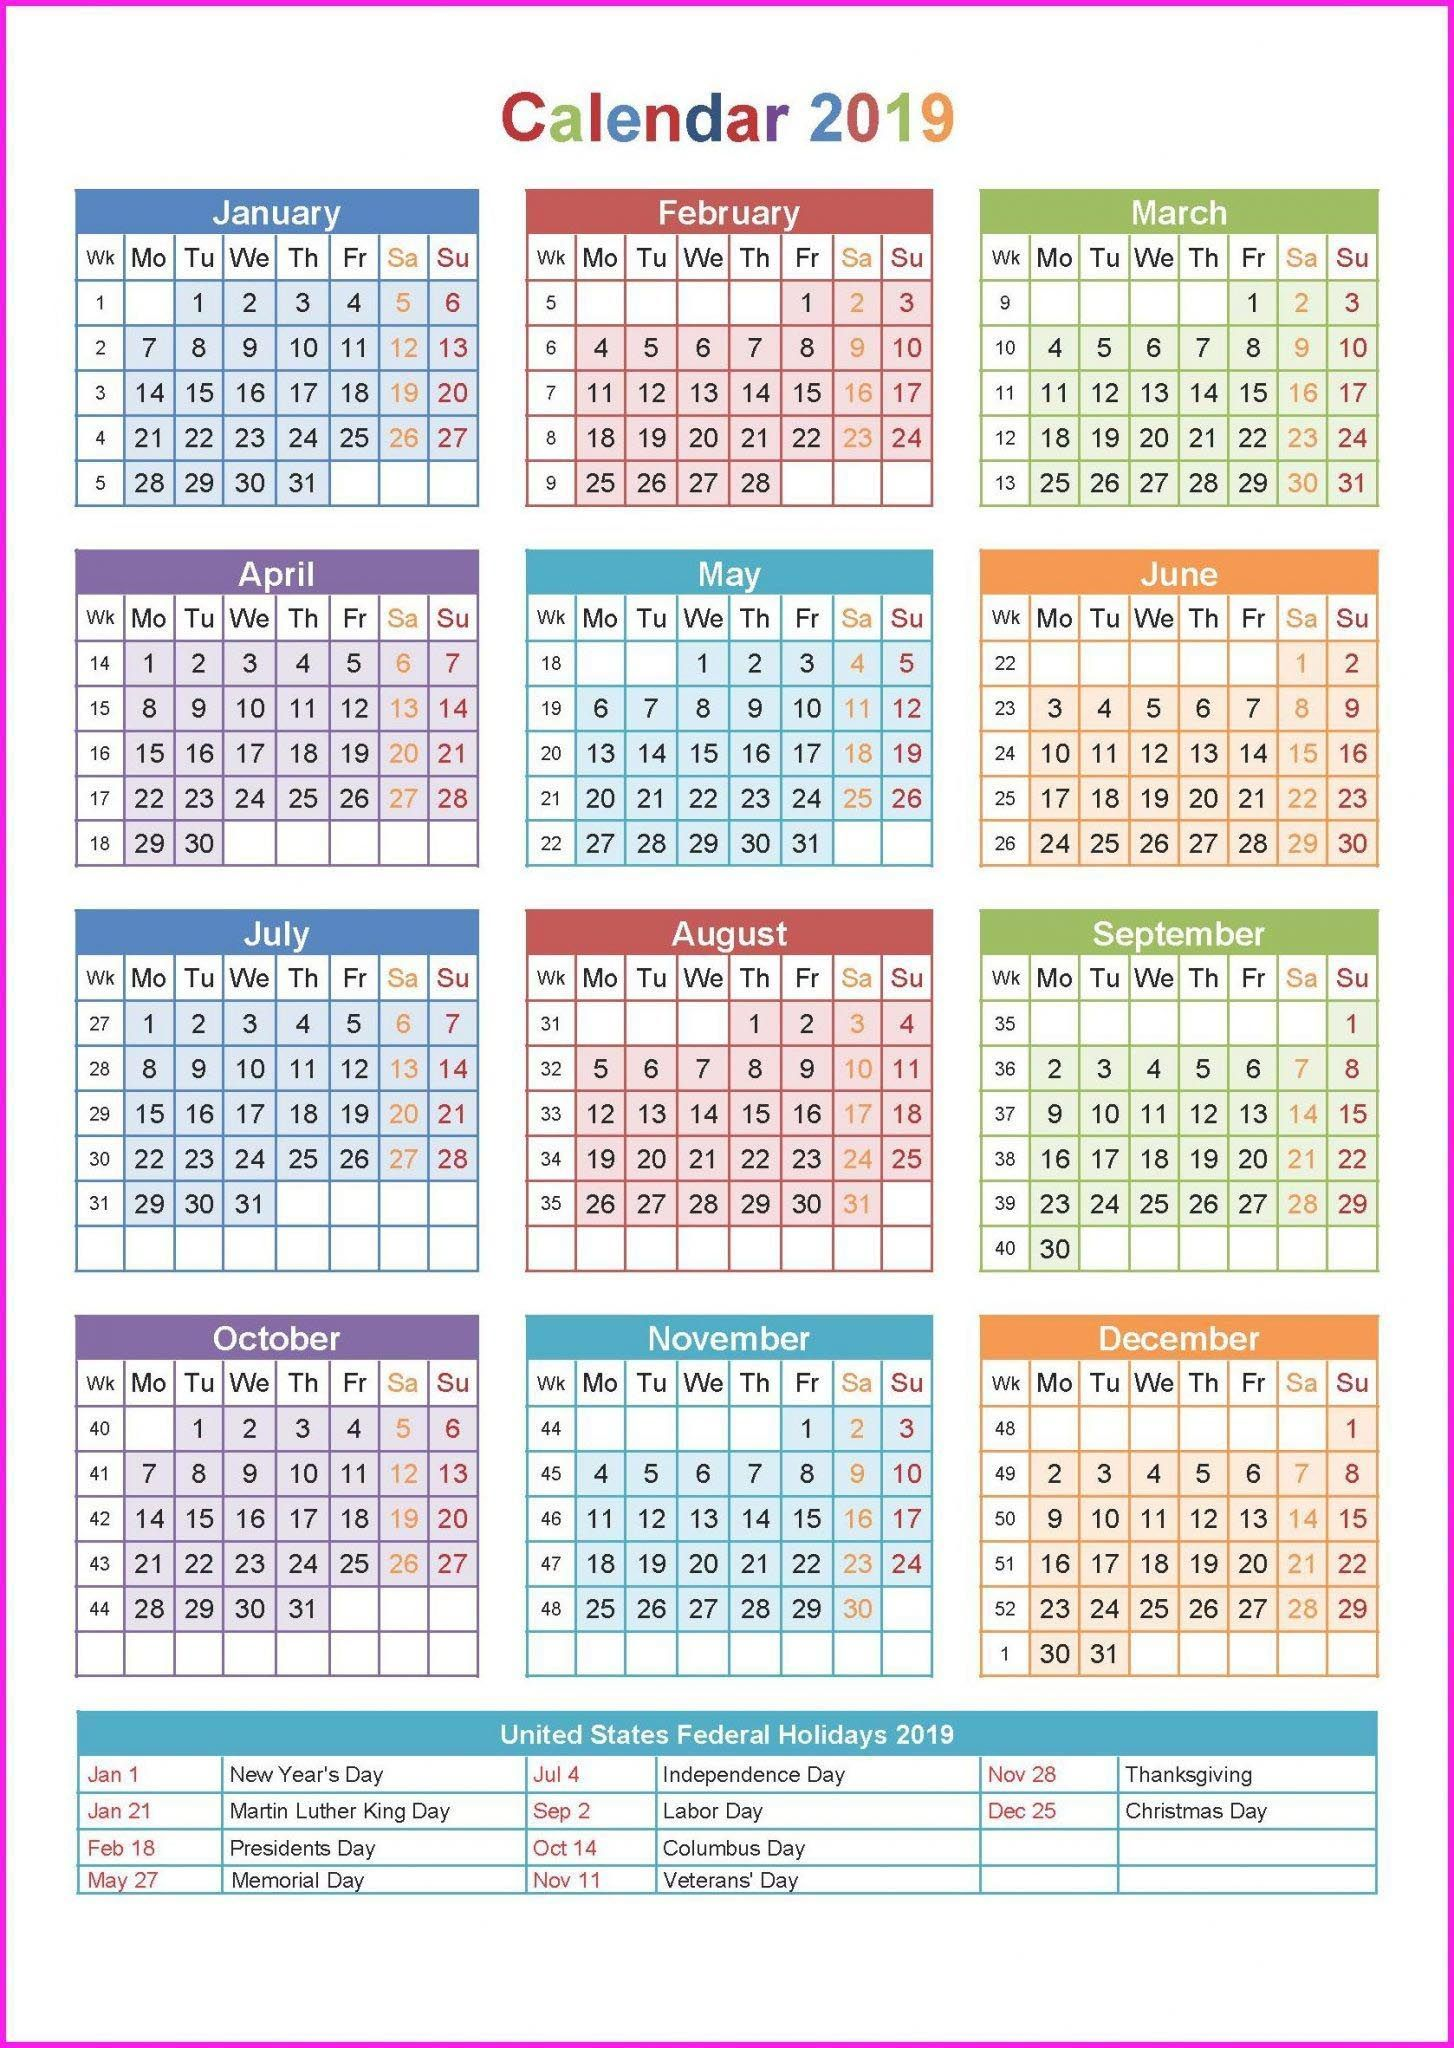 Printable Calendar Design 2019 Free Calendardesign777 On Pinterest Yearly Calendar Template Calendar Printables Printable Yearly Calendar